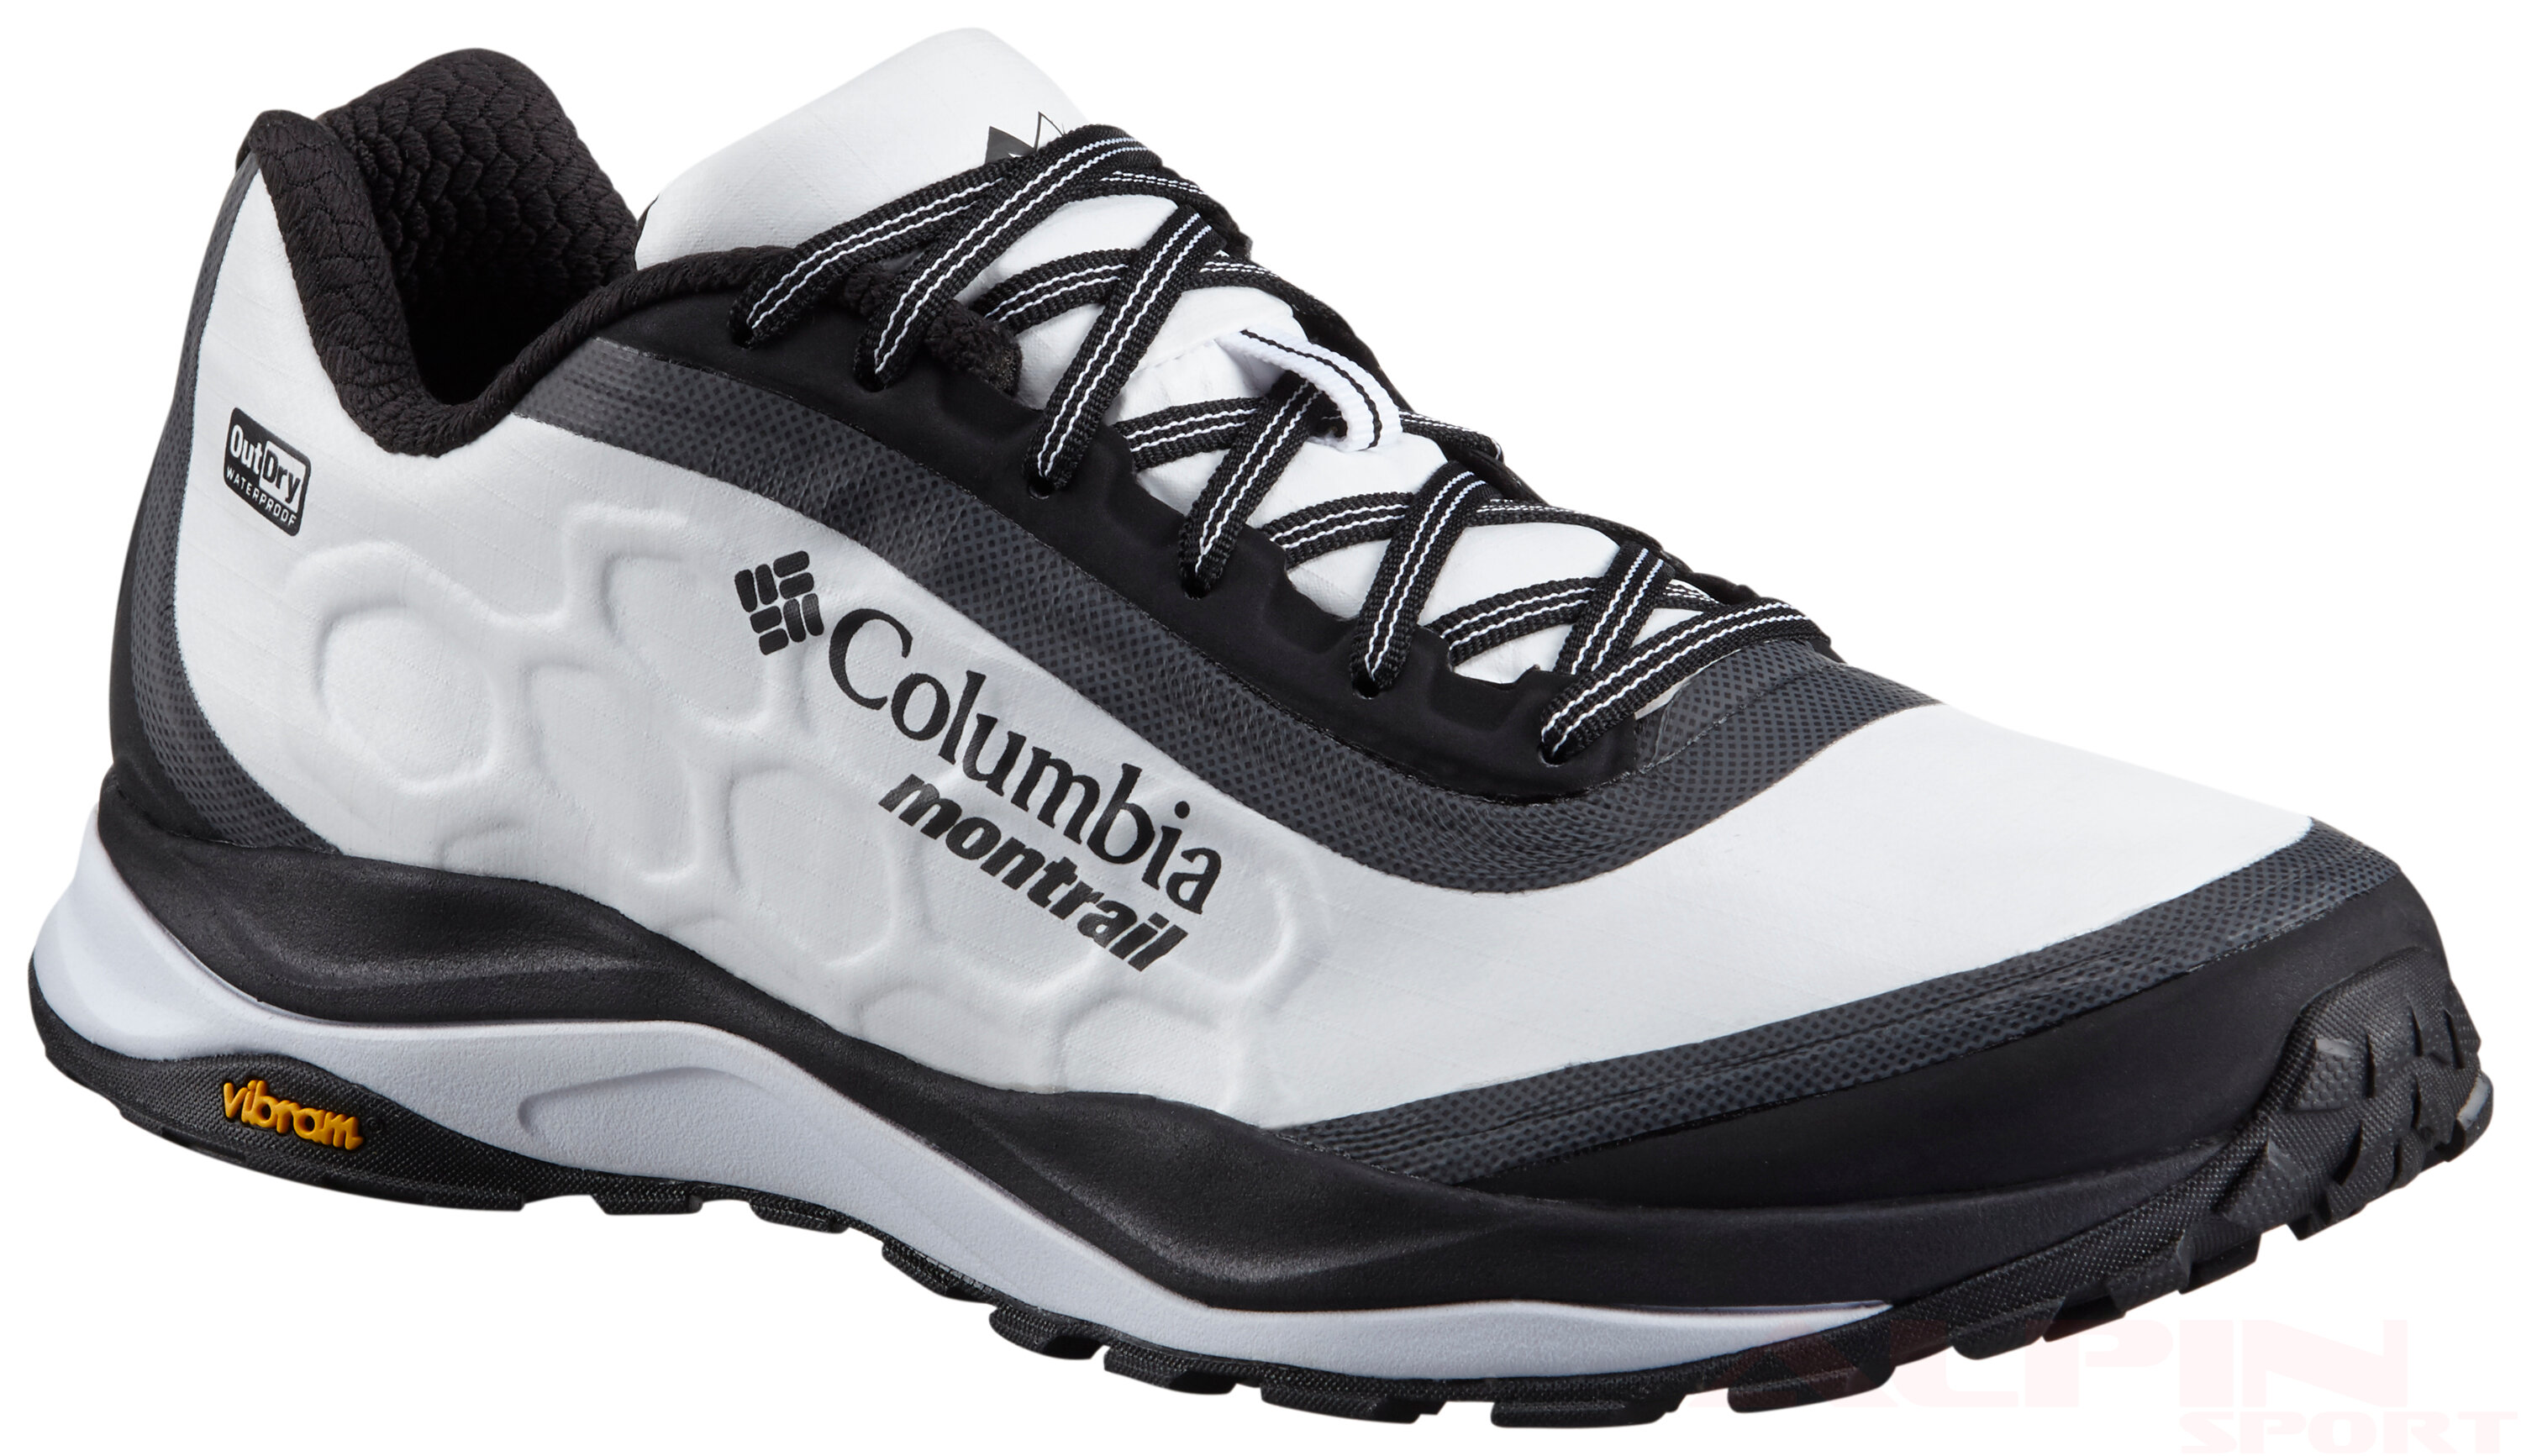 Buty COL BM4523 Trient Extreme Trient OutDry Extreme